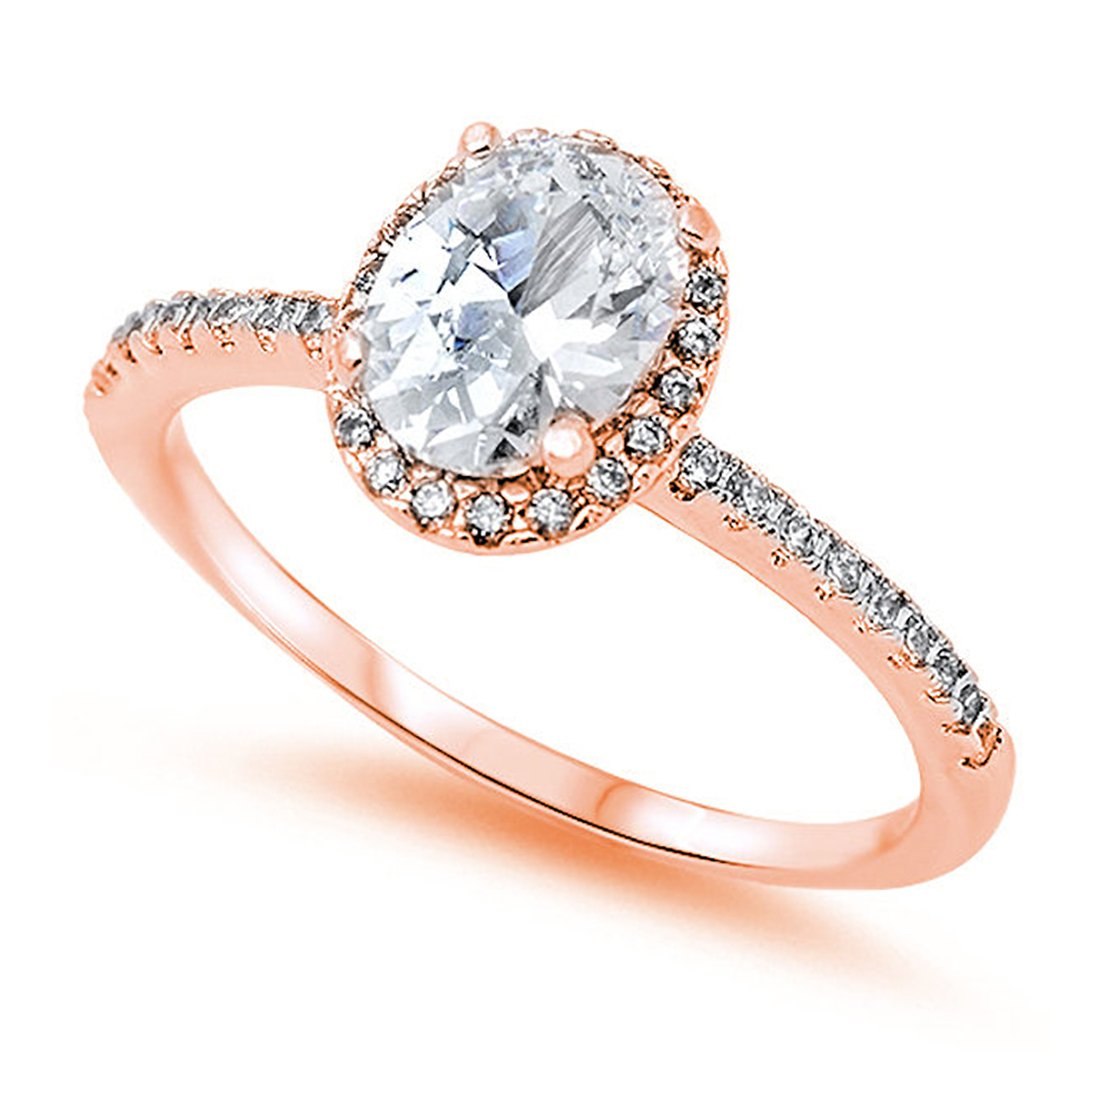 Accent Halo Wedding Promise Ring Oval Cut Cubic Zirconia Round CZ Rose Tone Plated 925 Sterling Silver, Size-8